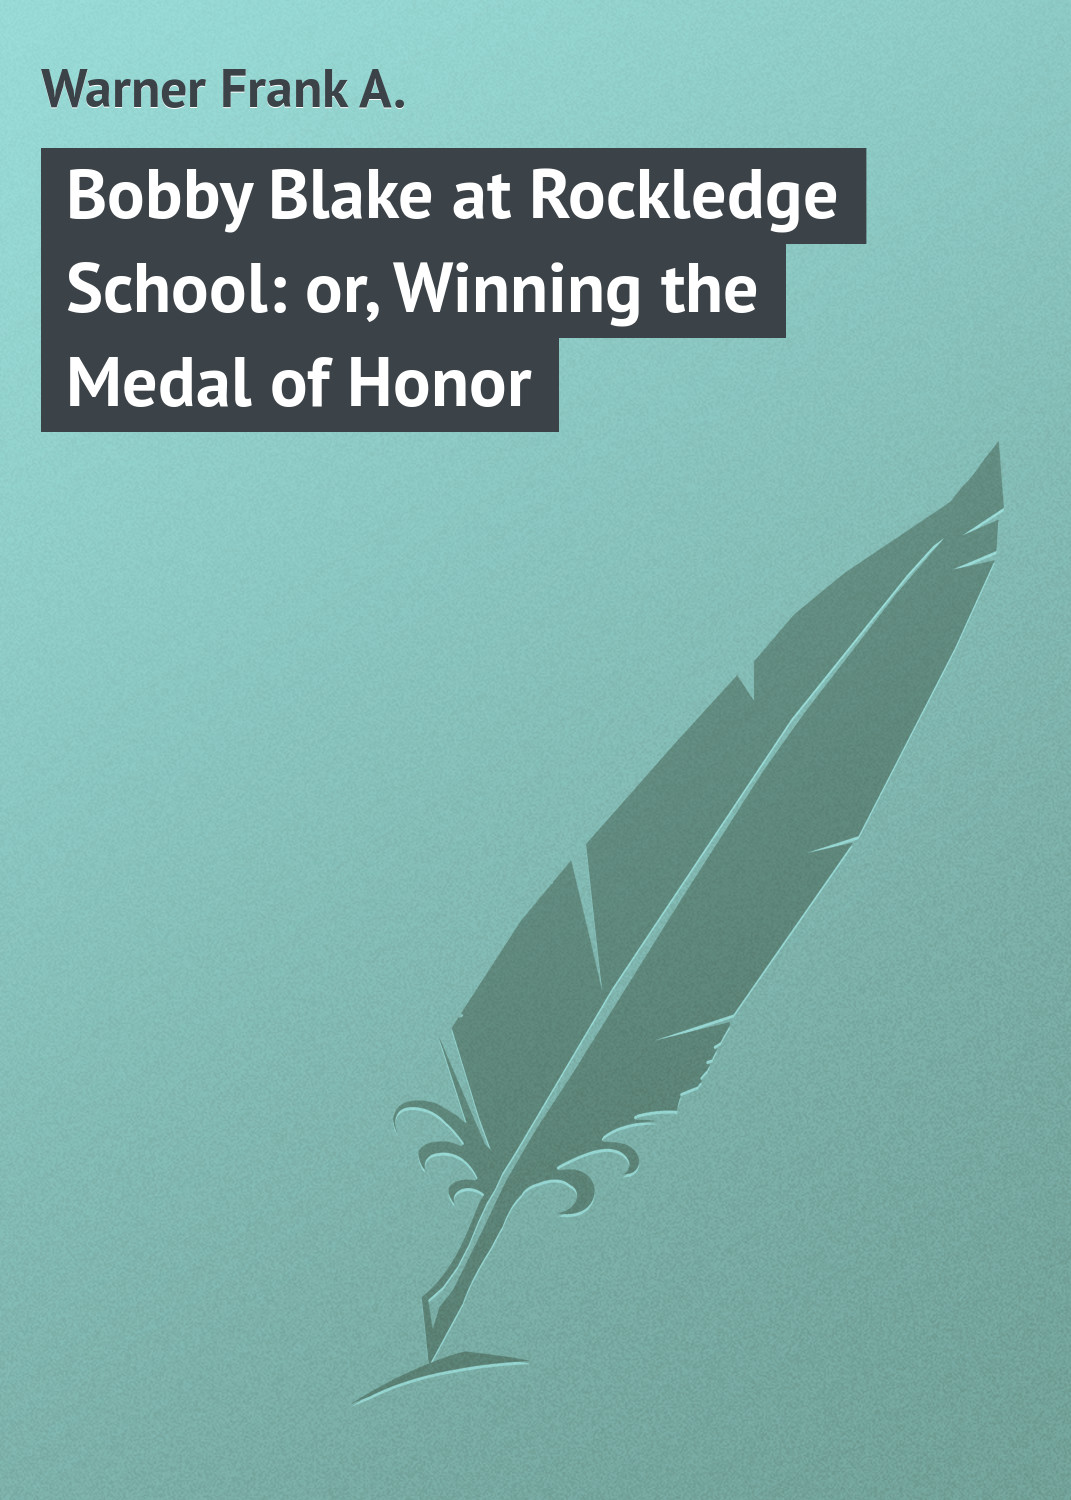 Warner Frank A. Bobby Blake at Rockledge School: or, Winning the Medal of Honor